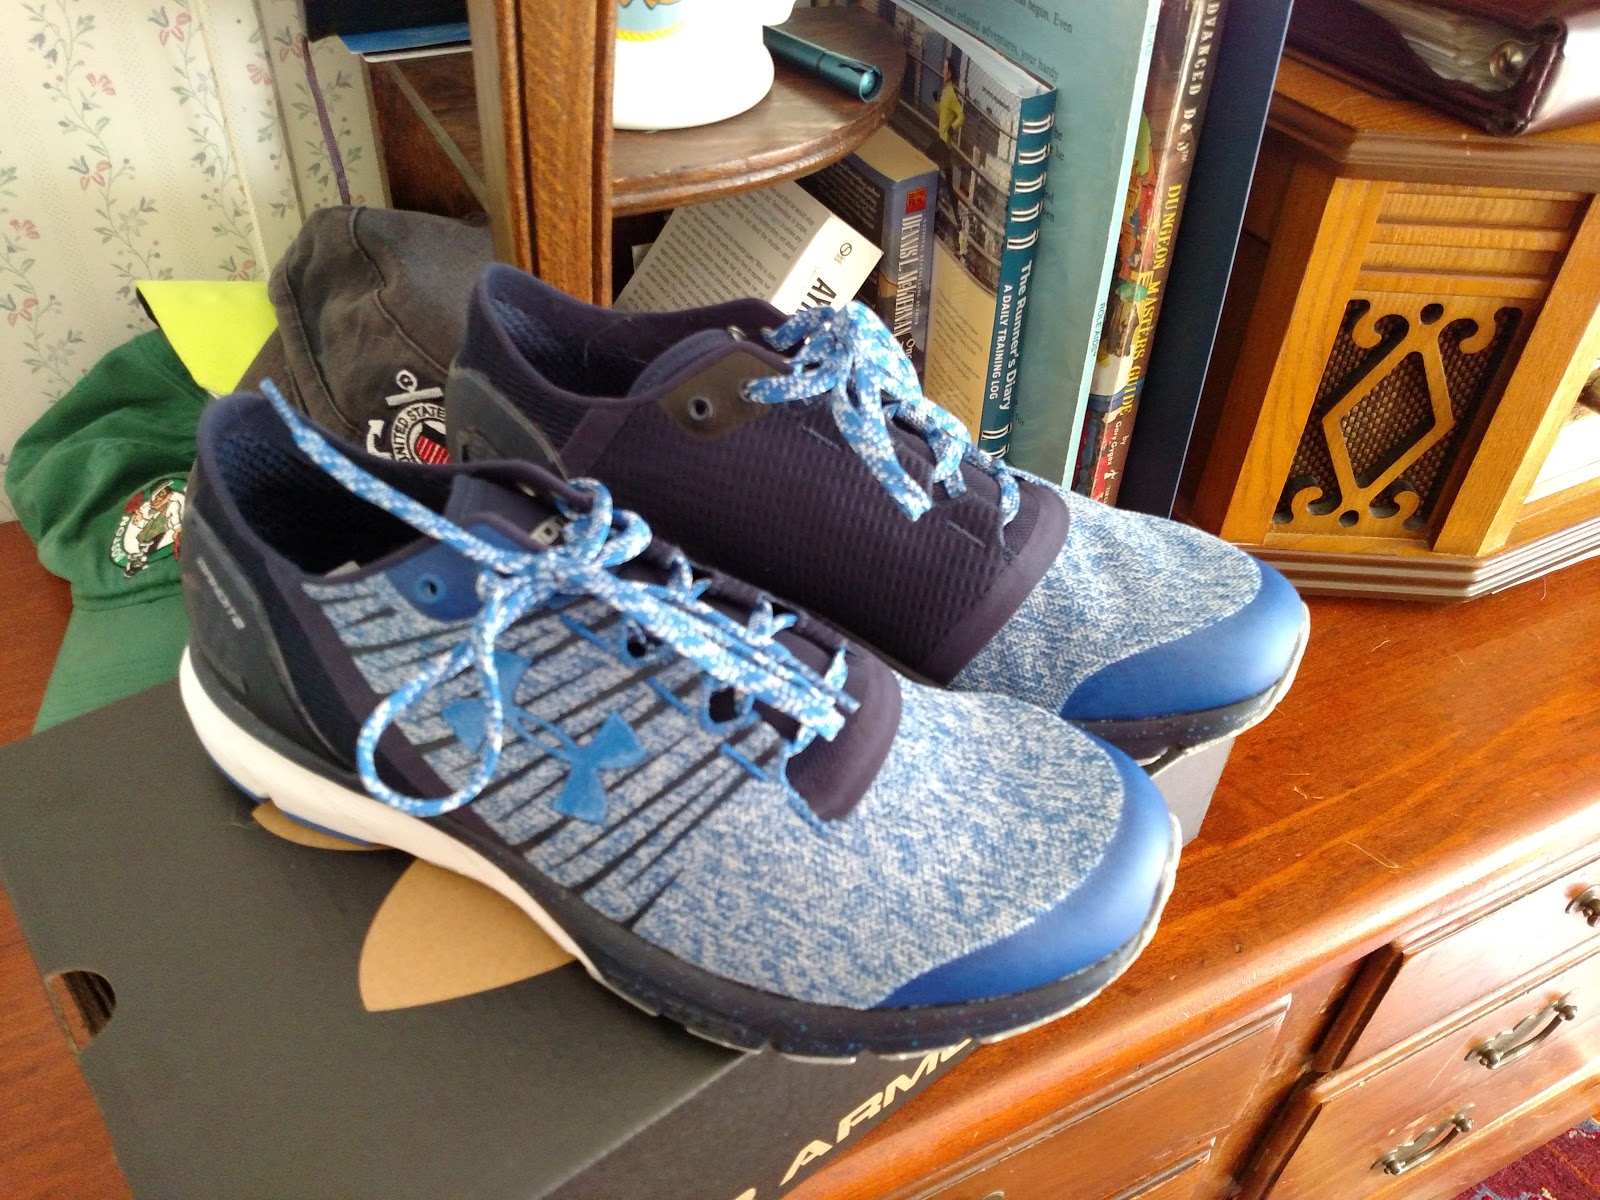 6f821f94ea1 Cheap under armour cross training shoes reviews Buy Online >OFF56 ...